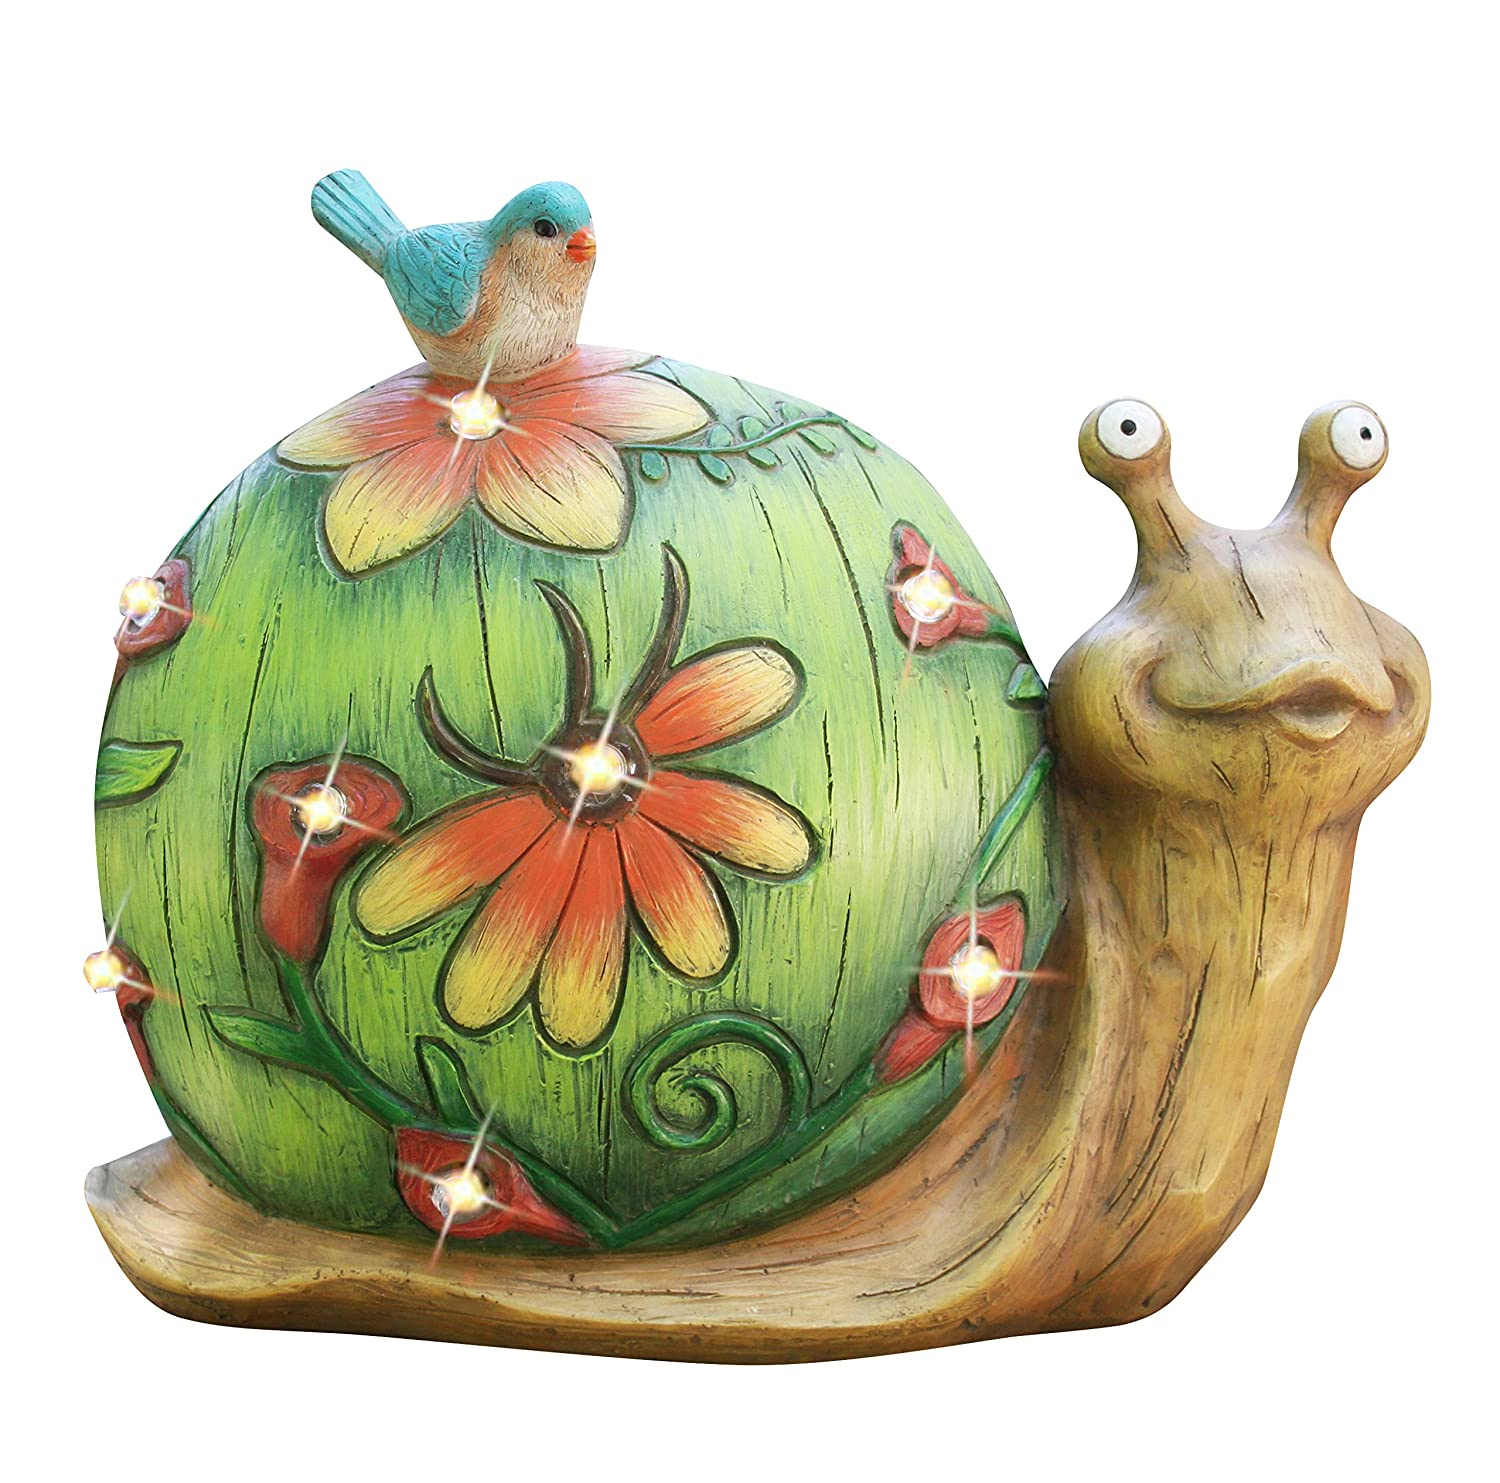 "Garden Statue Snail Figurine, Solar Powered Outdoor Lights for Indoor Garden Yard Decorations, 10""x8.5"", Housewarming Gift"